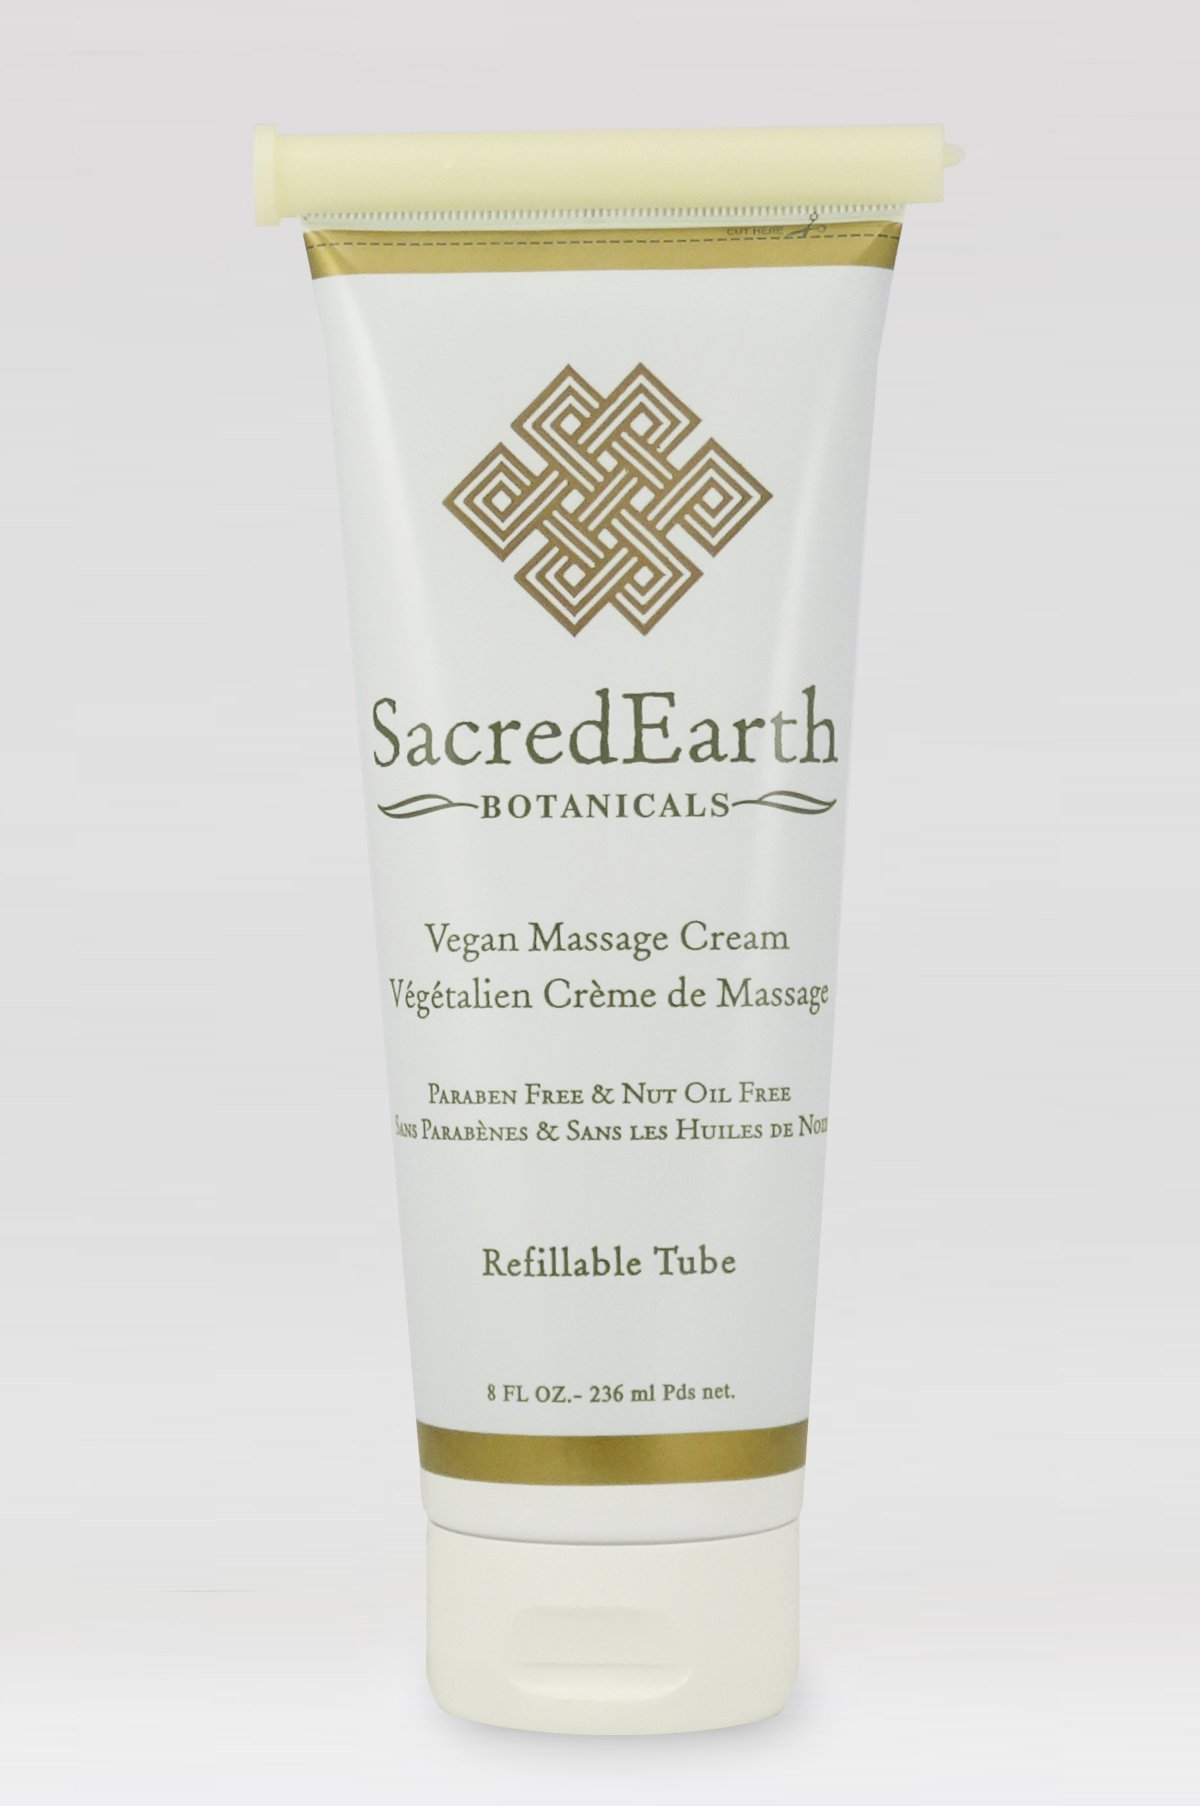 Vegan Massage Cream (8oz Tube) - Unscented, Water Dispersible, Nut Oil Free, Gluten Free and Contains Only Certified Organic Oils and Extracts.